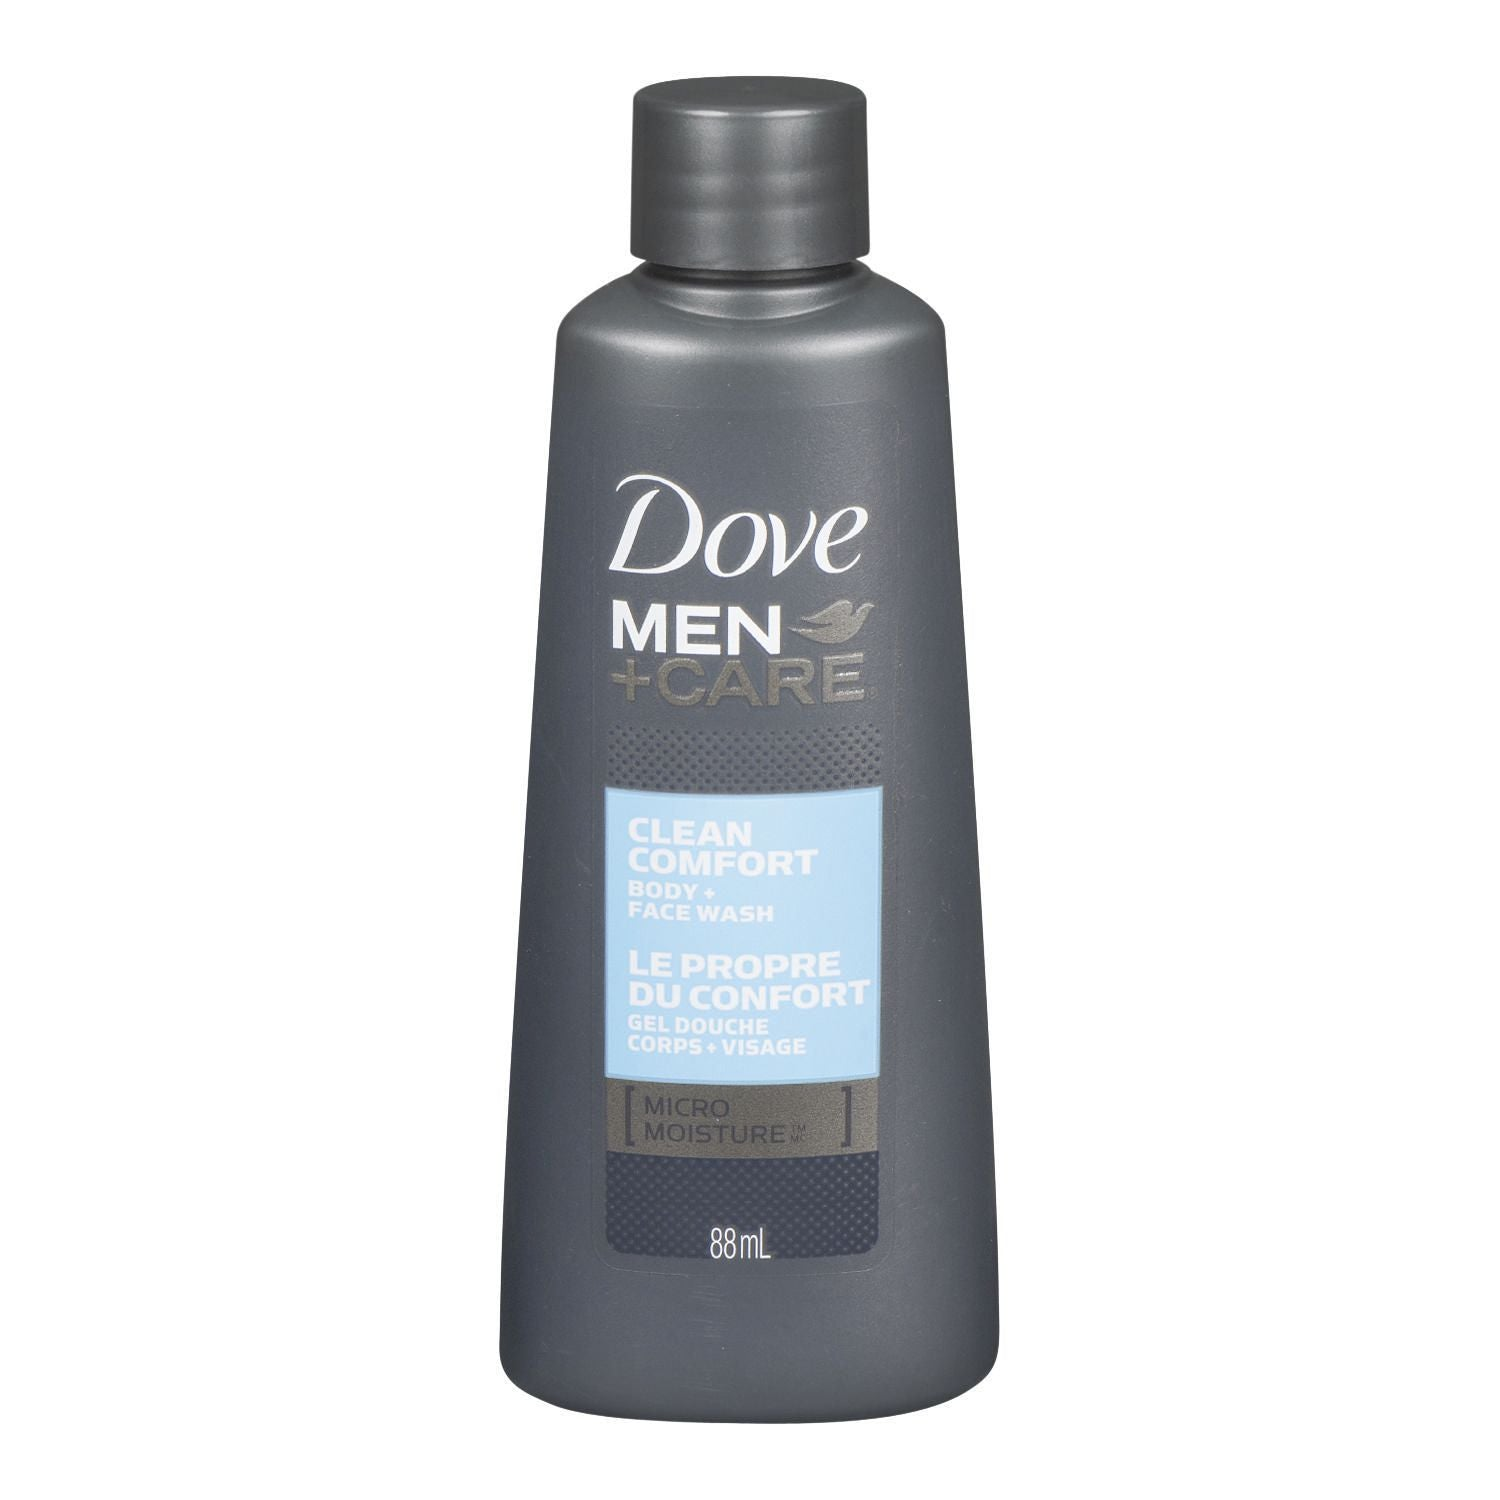 Dove Men+Care Clean Comfort Body + Face Wash 88mL